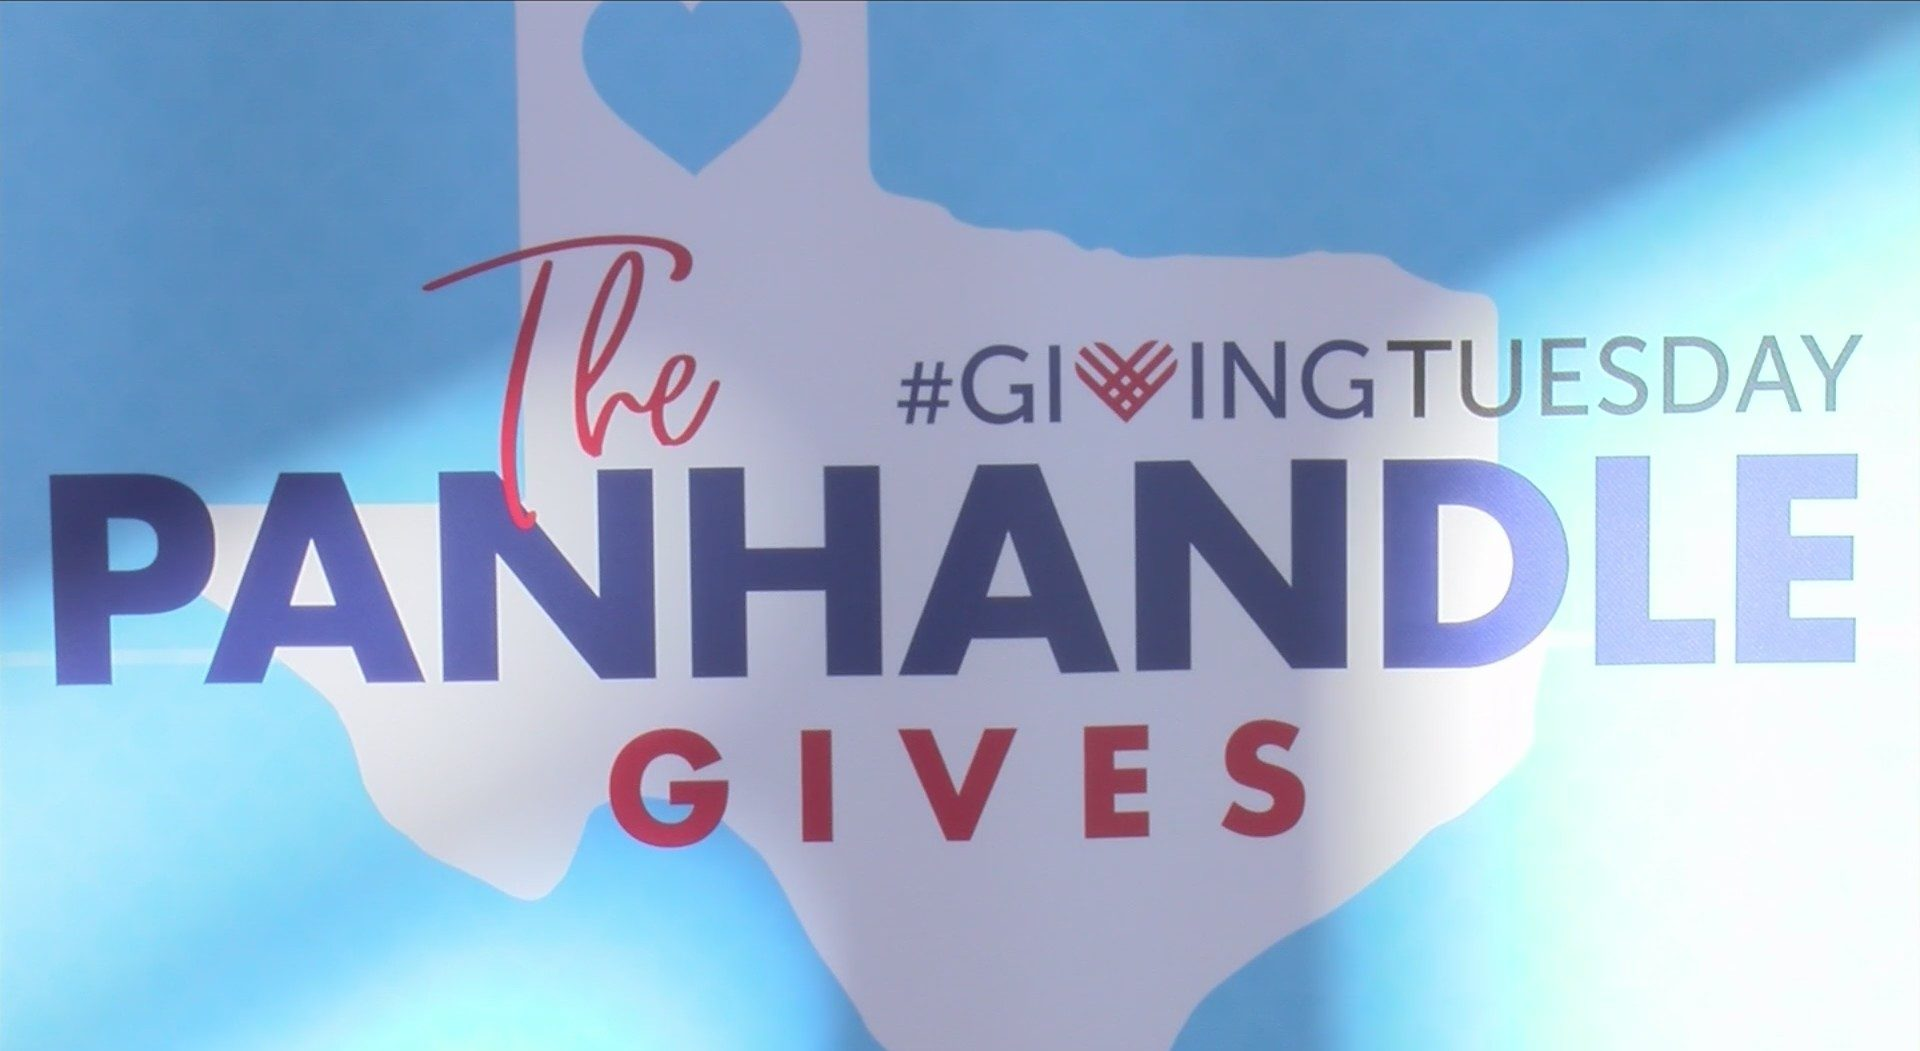 #ThePanhandleGives Kicks Off 9 Days of Giving